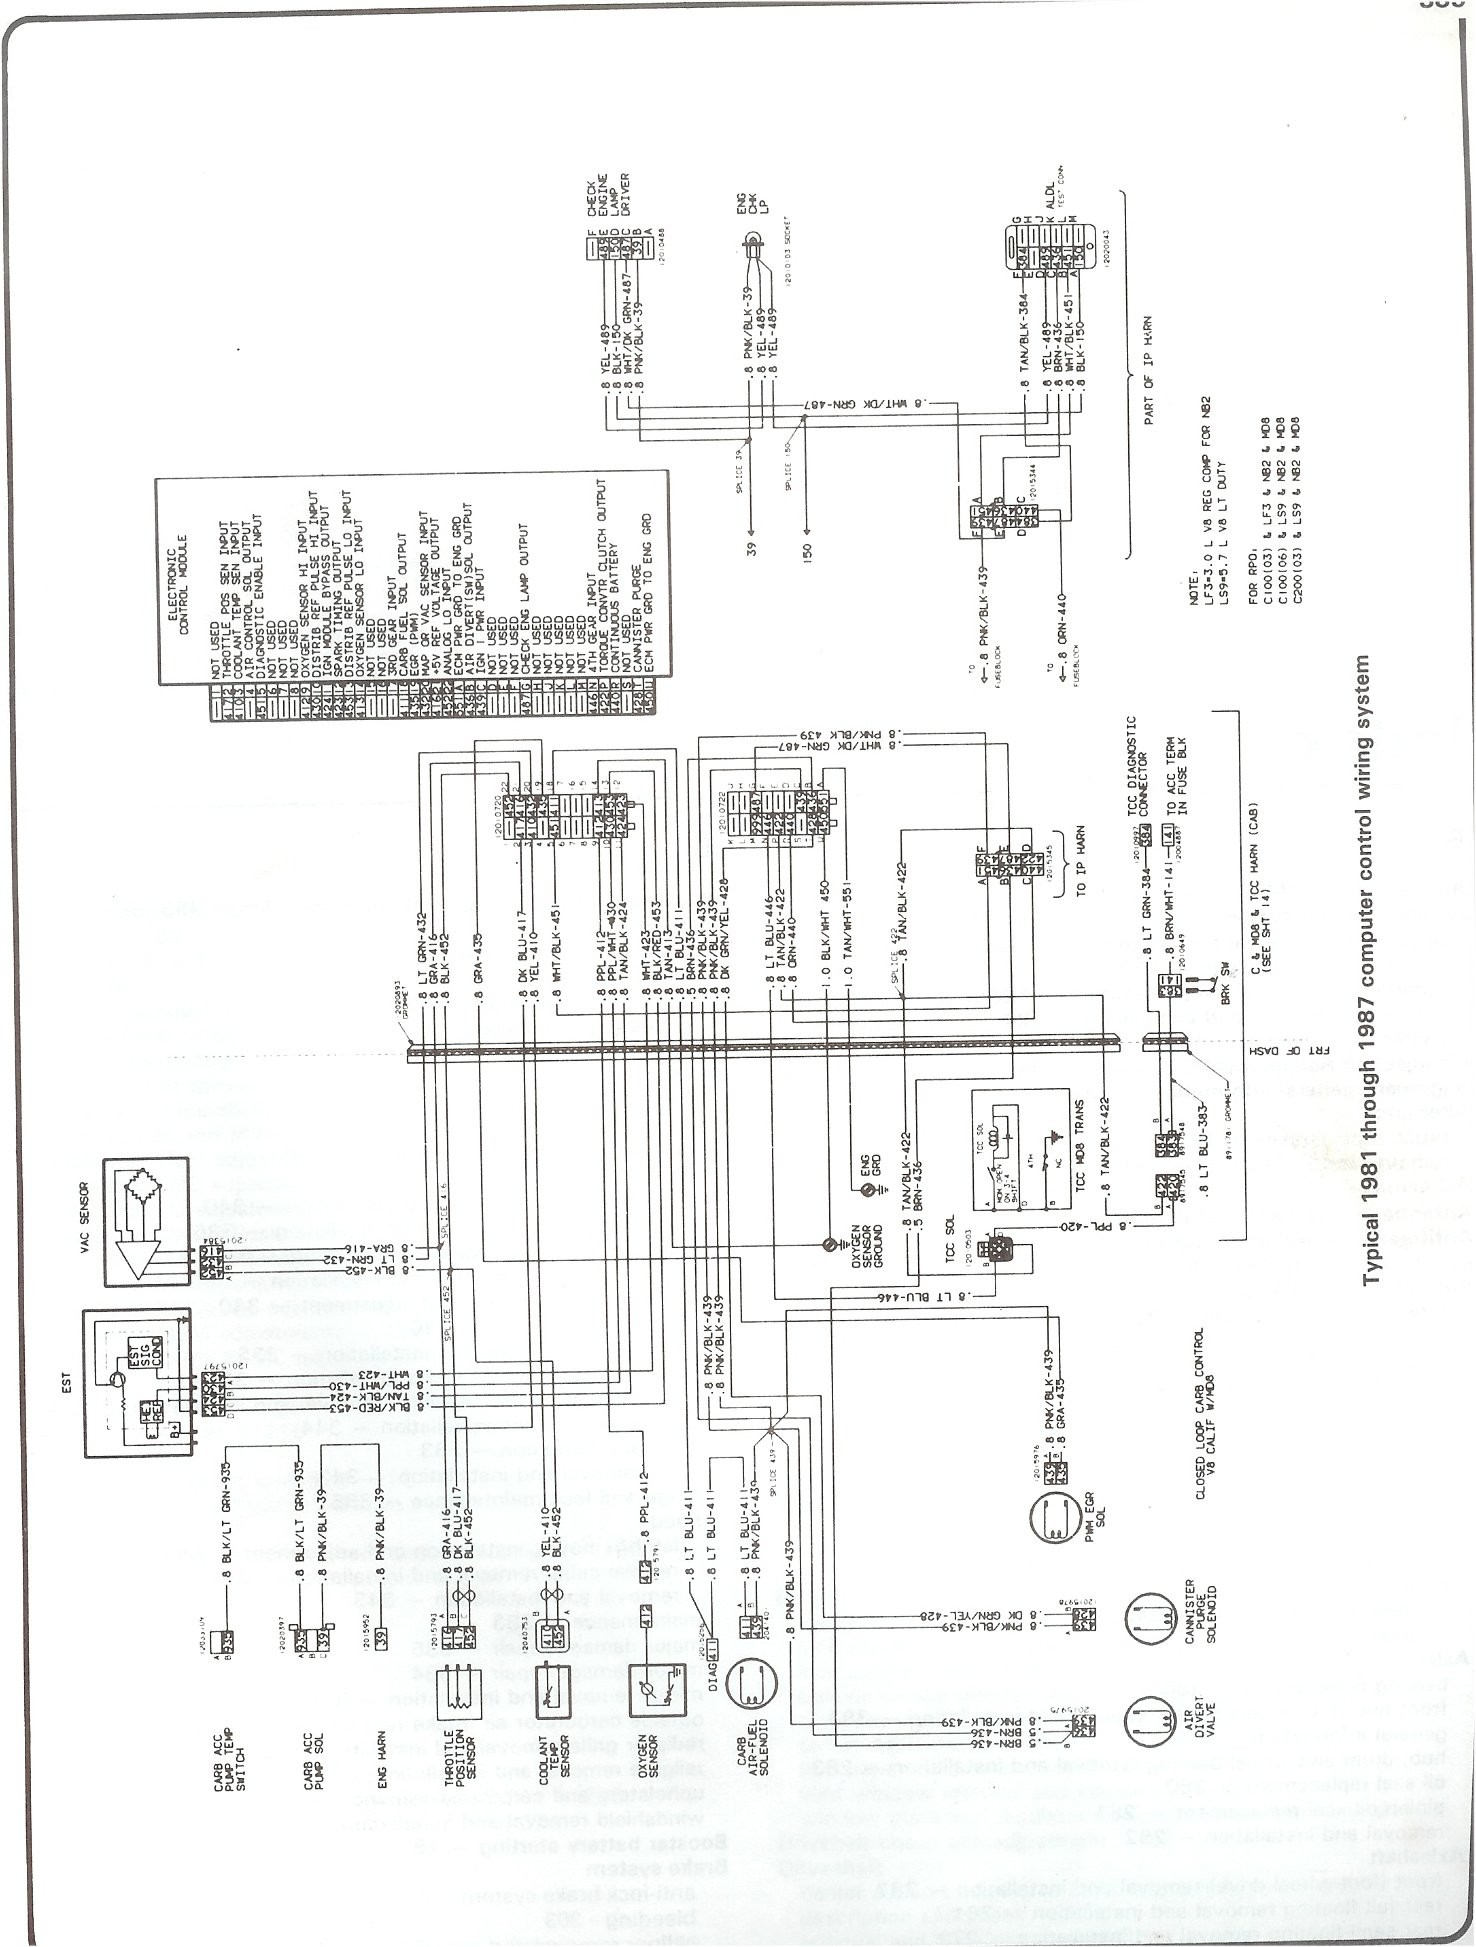 1986 chevy fuse panel diagrams explore schematic wiring diagram u2022 rh appkhi com